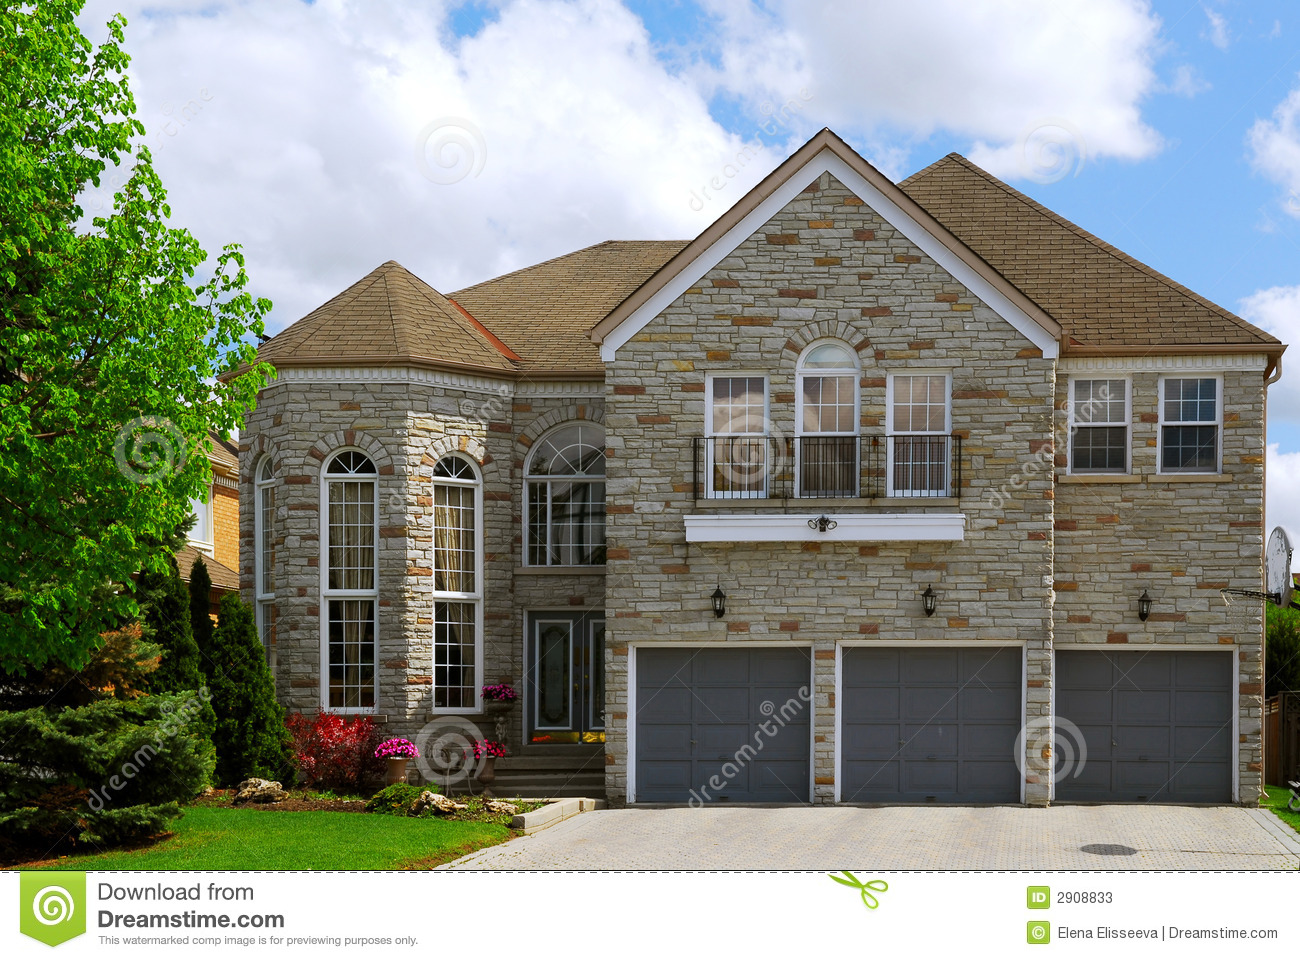 Residential Home Stock Photos Image 2908833